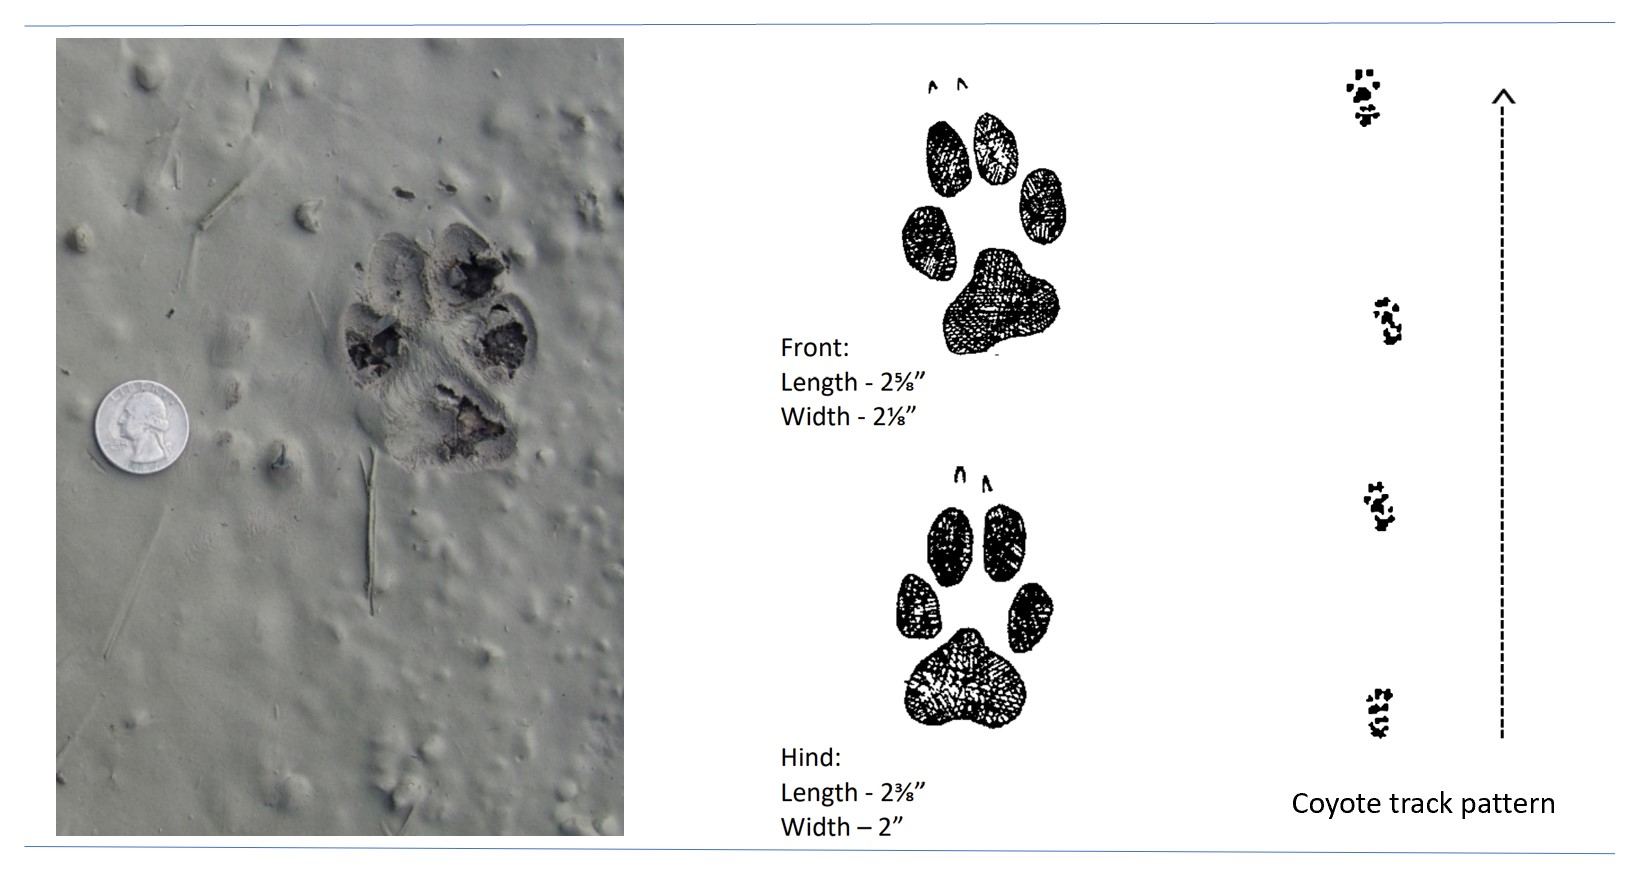 Photo and illustrated tracks of a coyote.